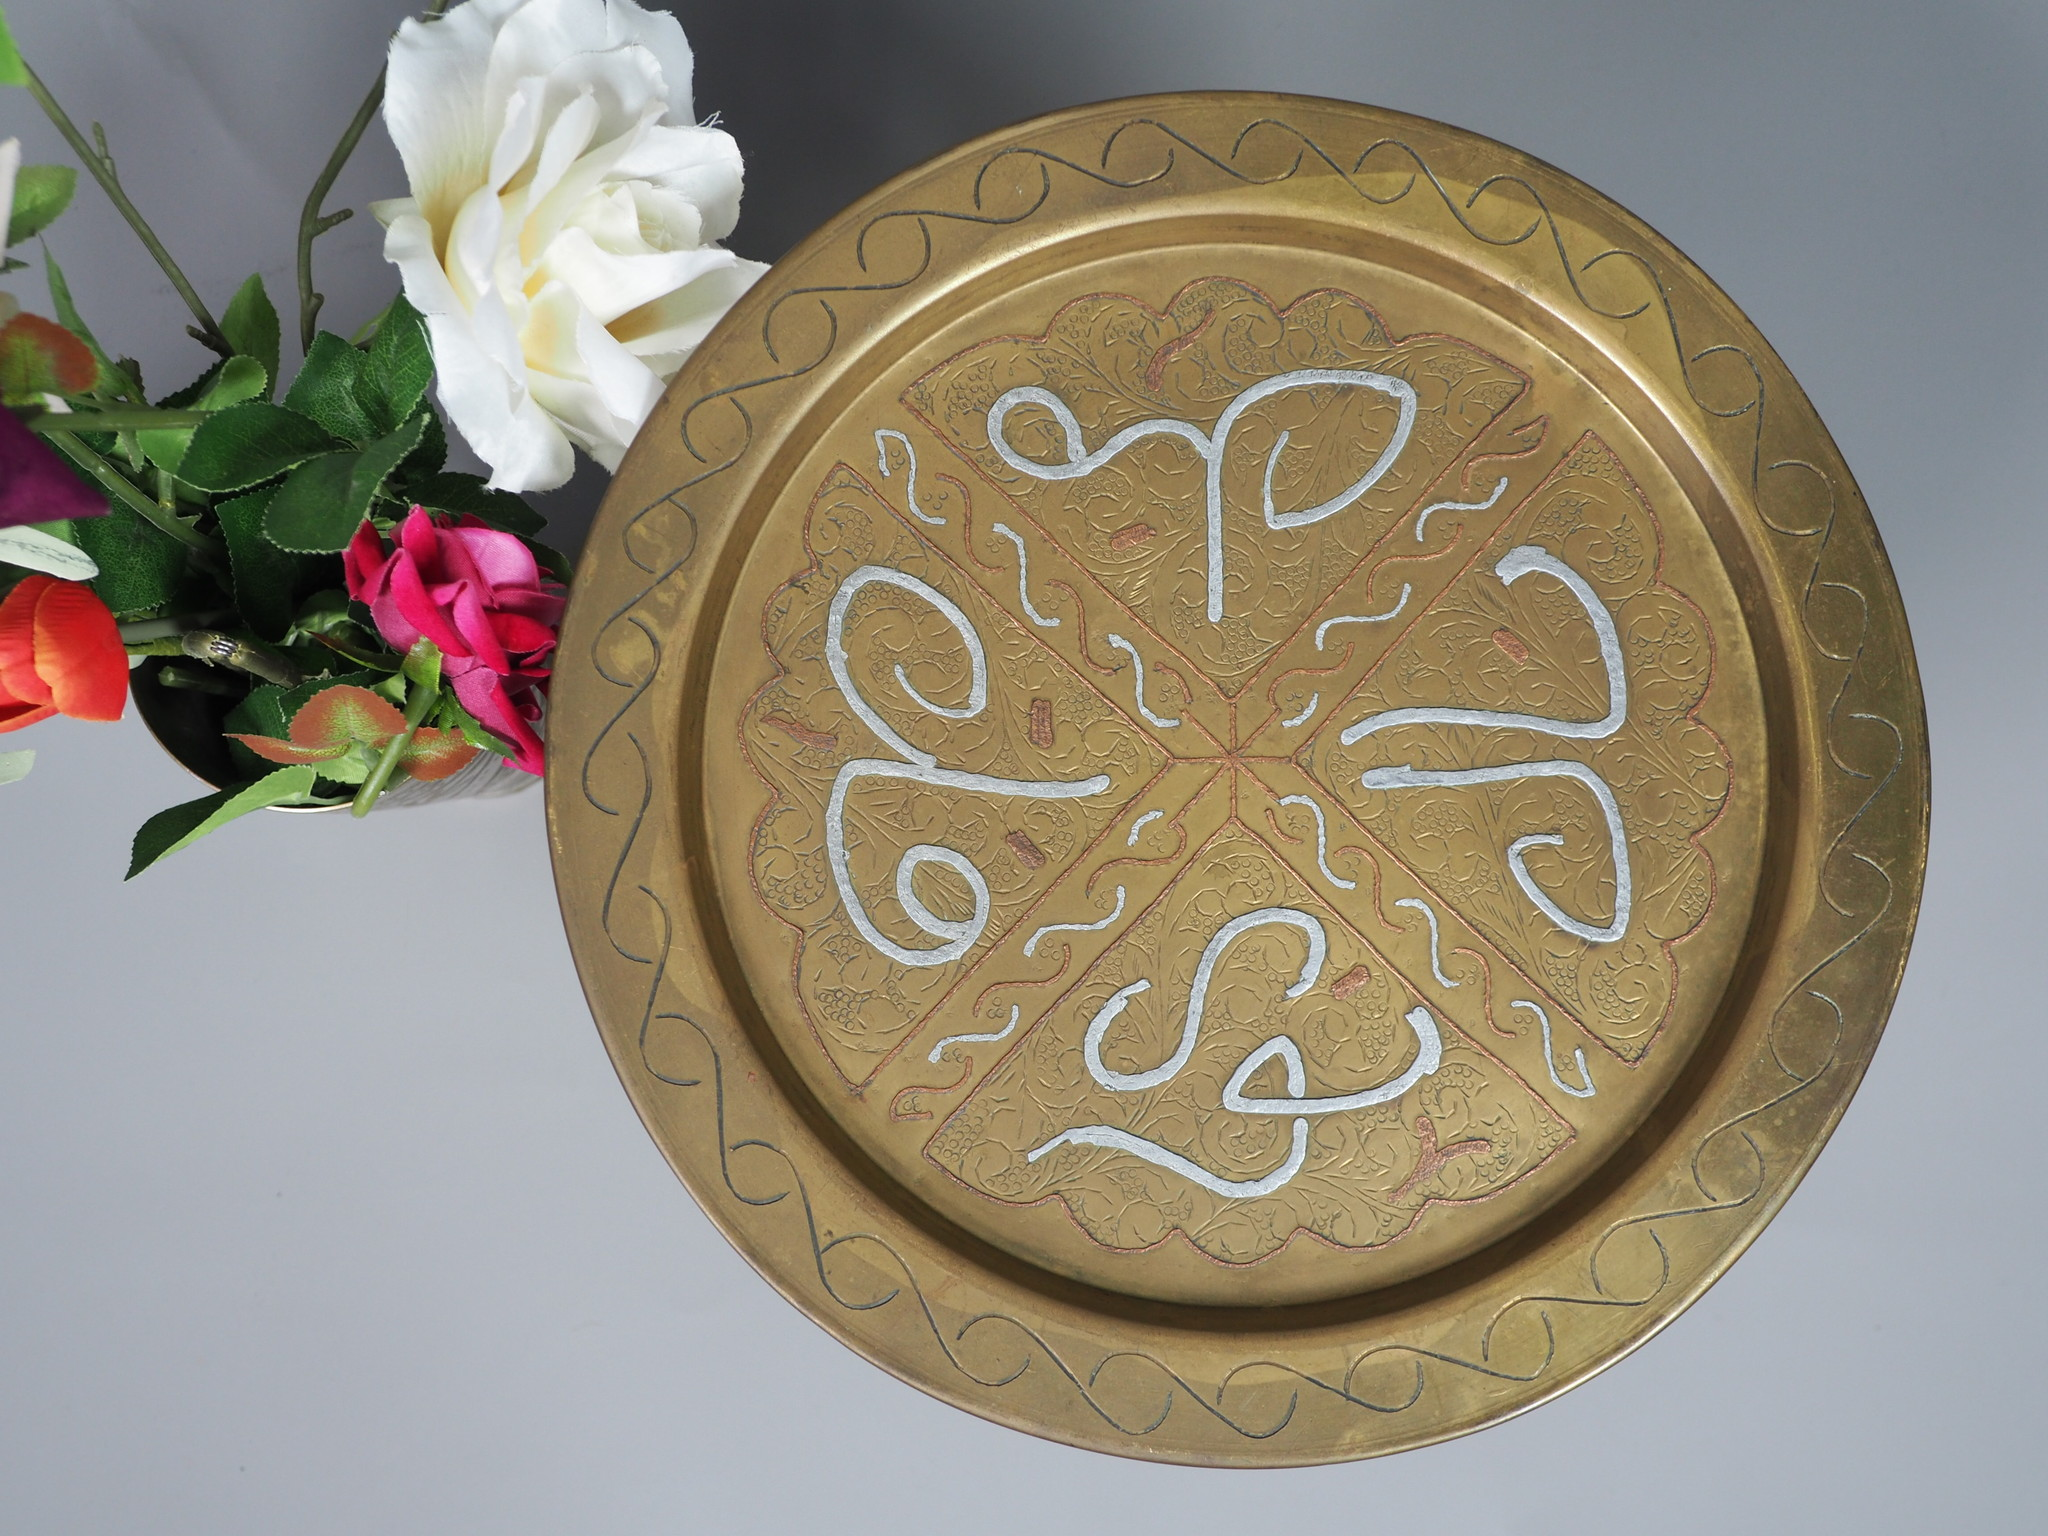 Antique ottoman orient Islamic Hammer Engraved Brass Tray Syria Morocco, Egypt Mamluk Cairoware with arabic calligraphy K14